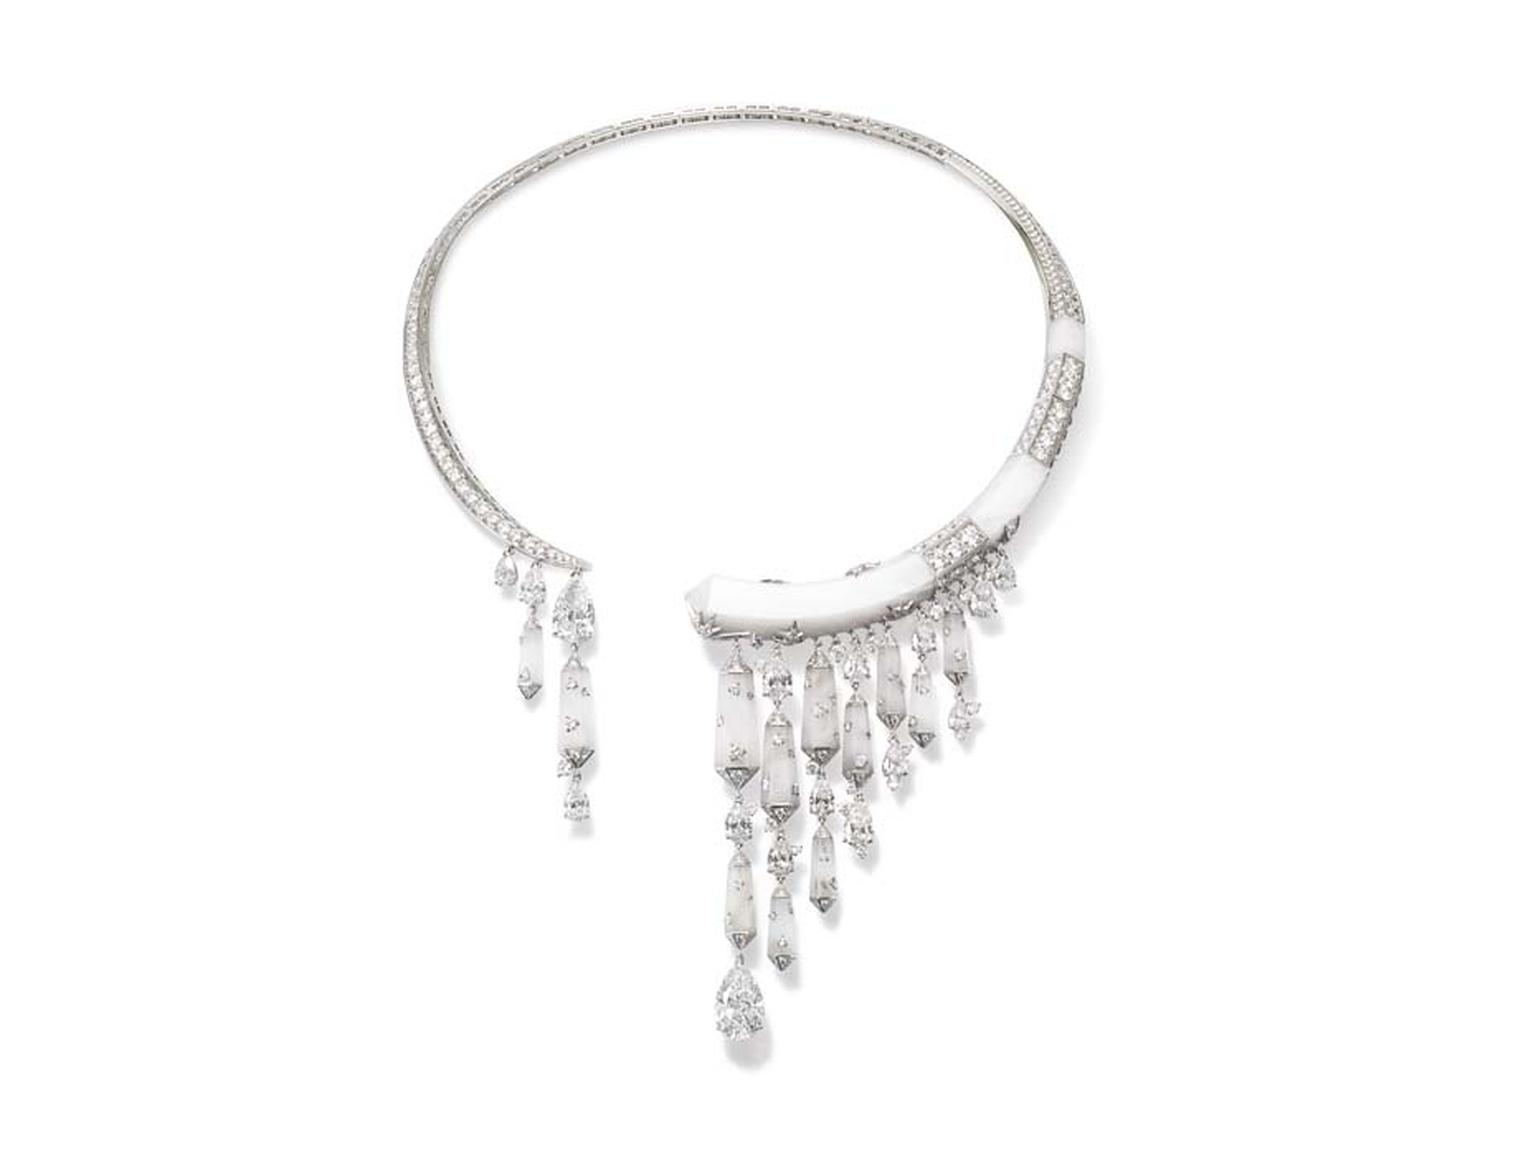 Chaumet Lumieres d'Eau high jewellery necklace in white gold and platinum, set with frosted rock crystal and over 9ct of diamonds.